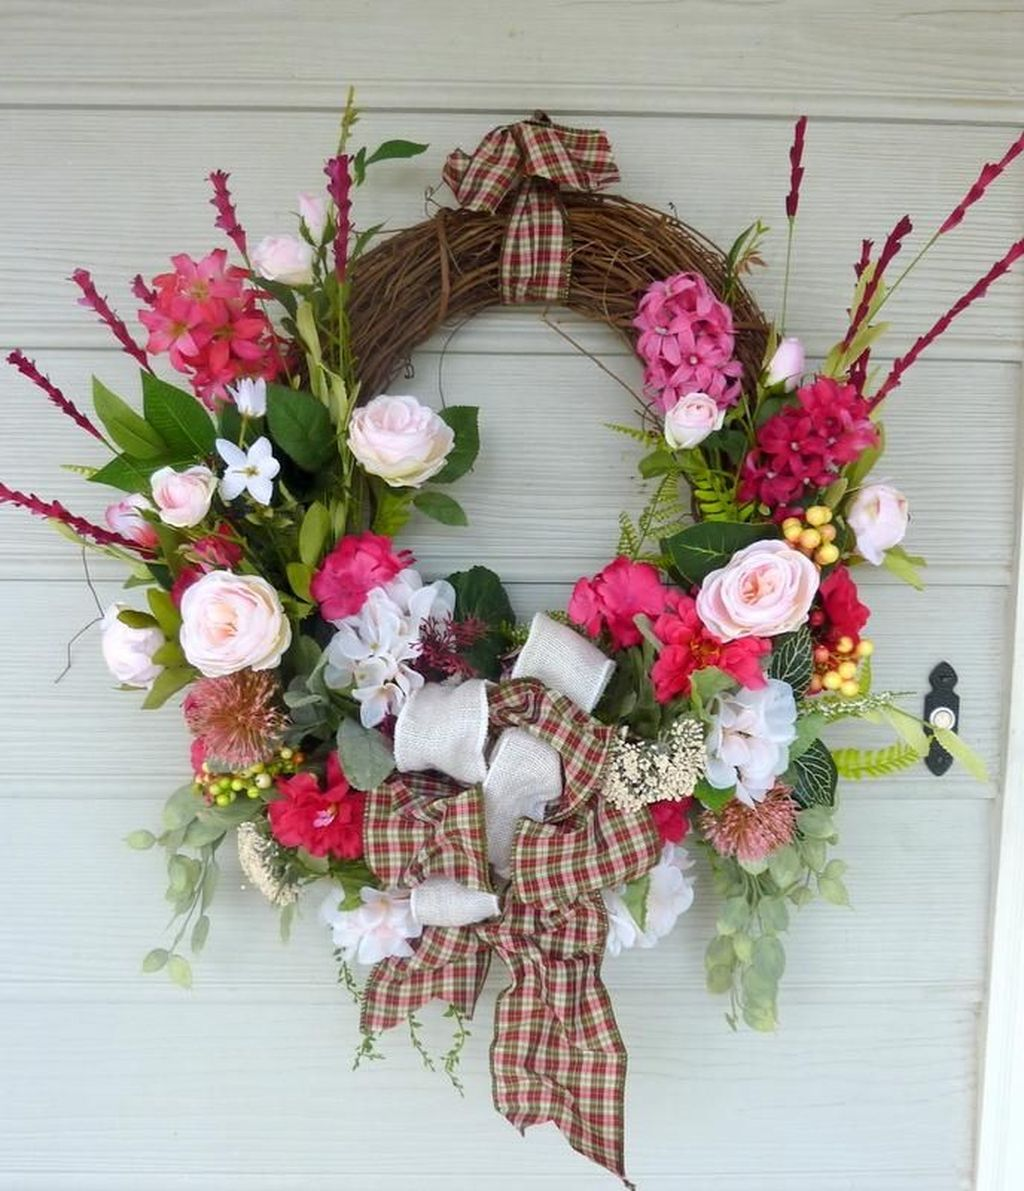 Awesome Spring Wreath Ideas For Front Door Decor 30